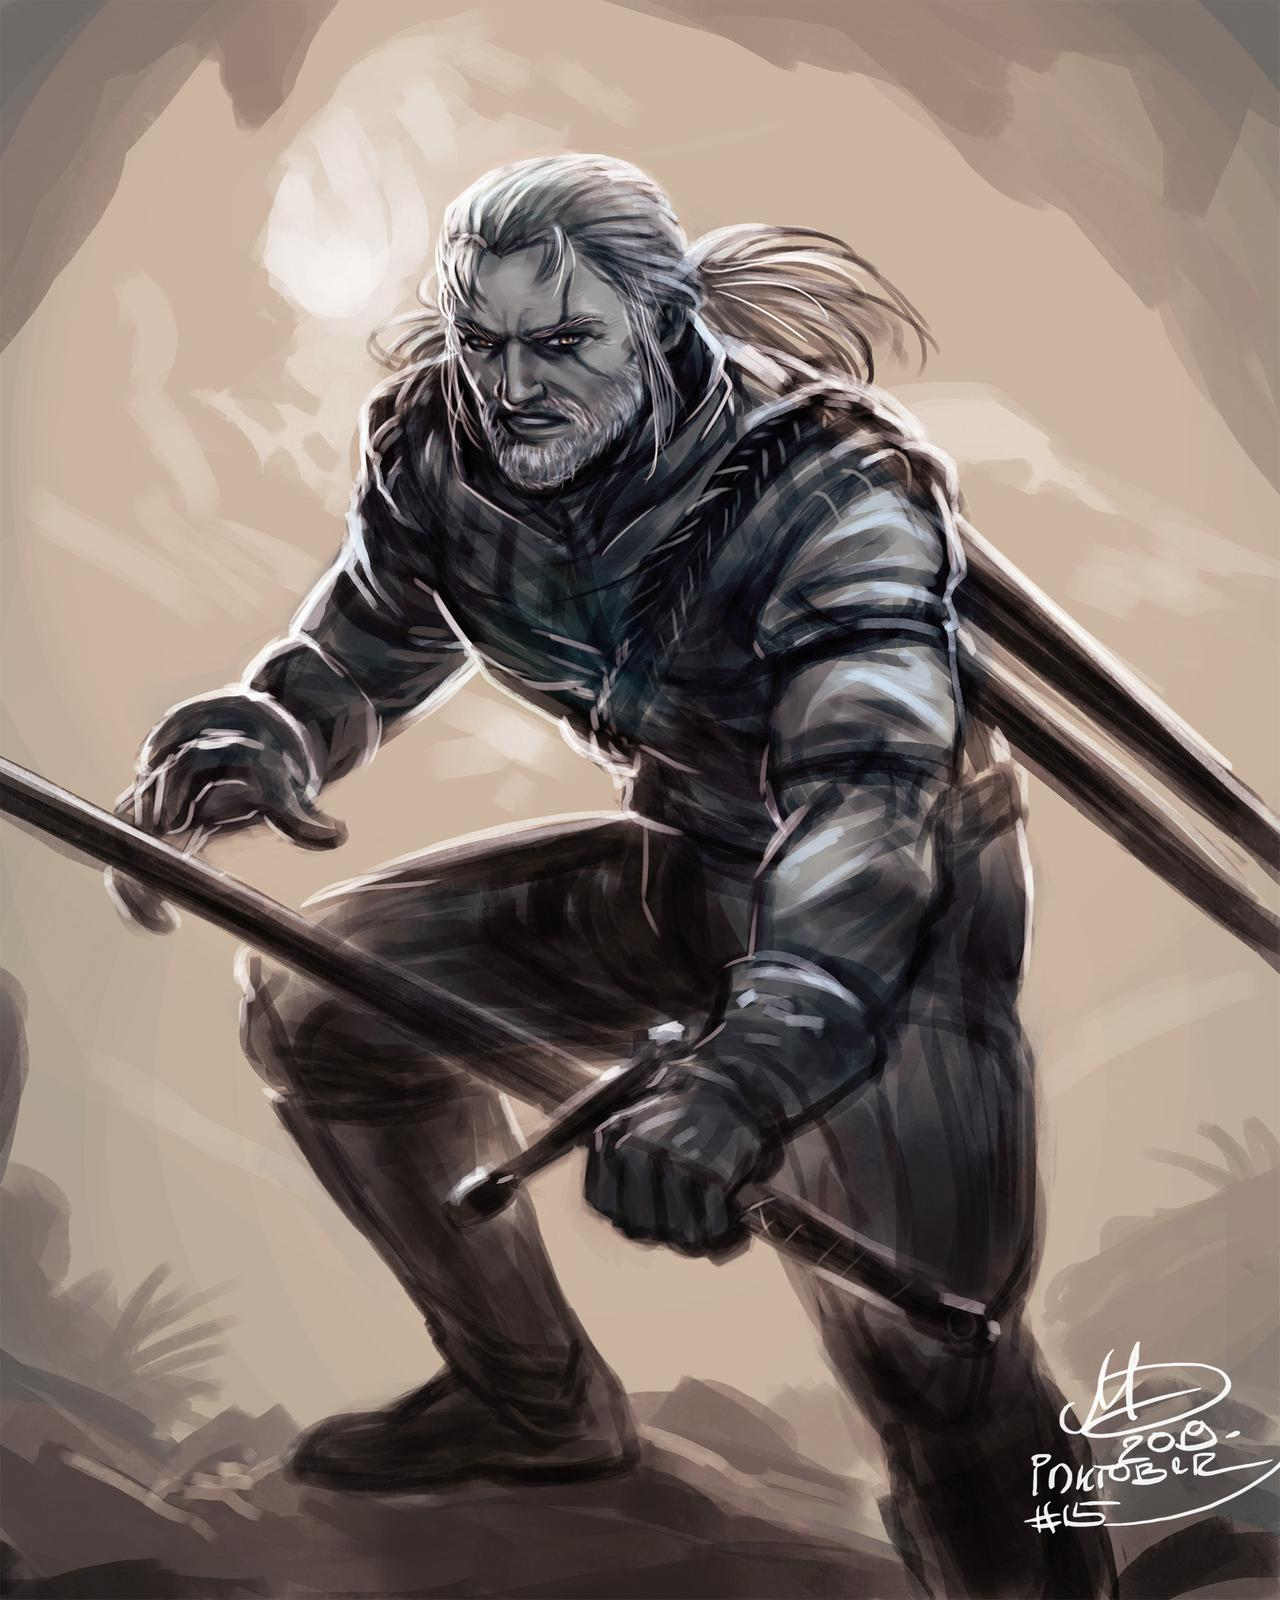 geralt_of_rivia_by_amarcus88lg_ddjmwsh-fullview.jpg - Witcher 3: Wild Hunt, the